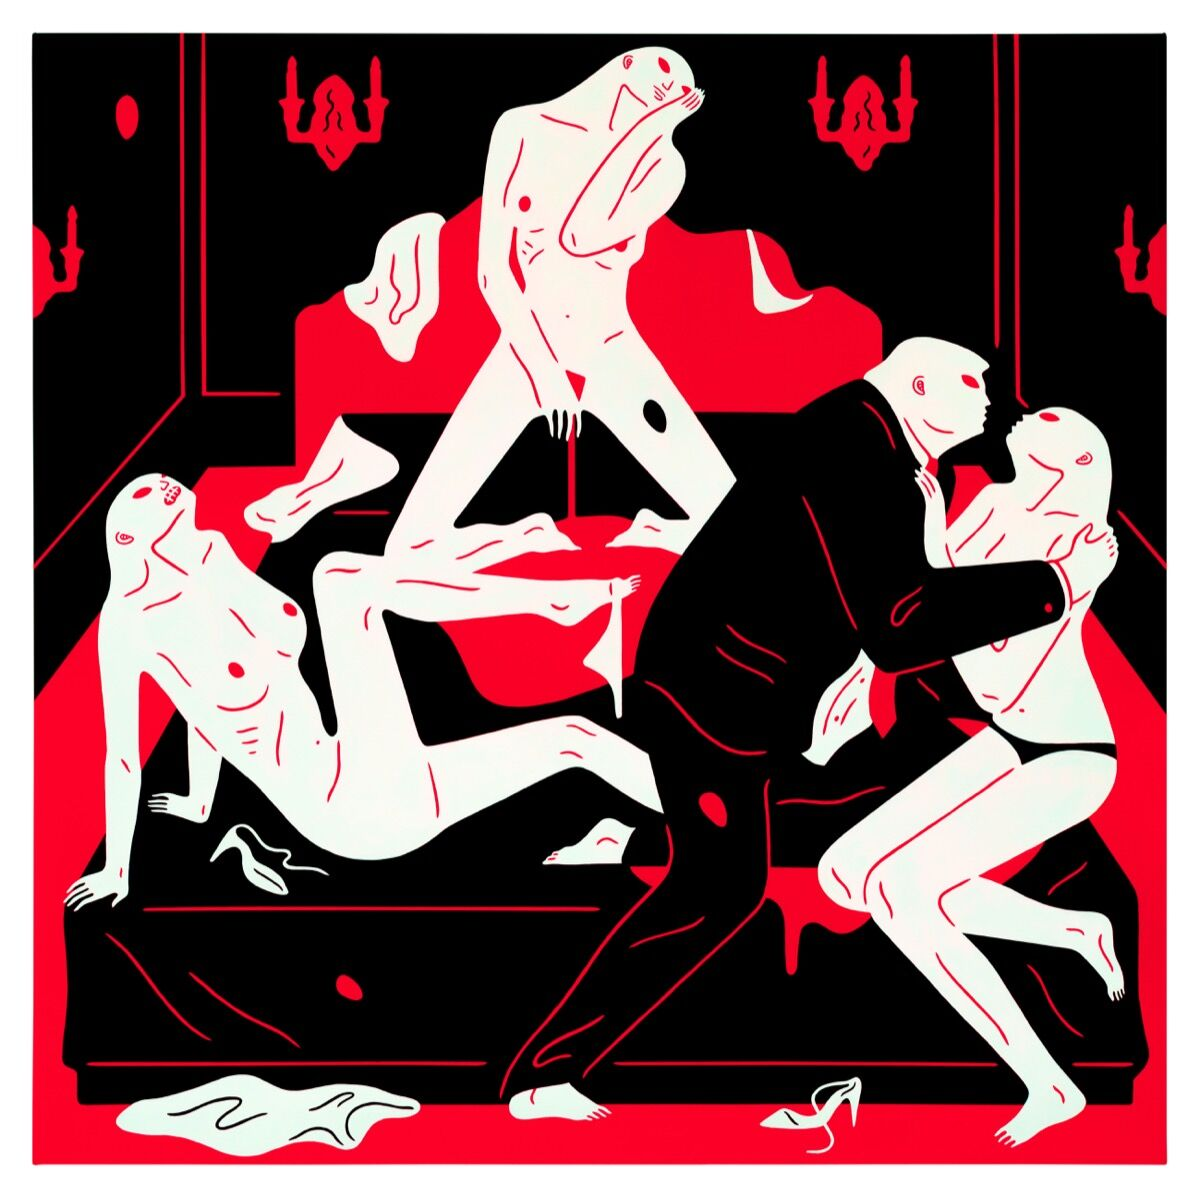 Cleon Peterson, The Pissers II, 2018. Photo by Aaron Farley. Courtesy of the artist and Over the Influence.